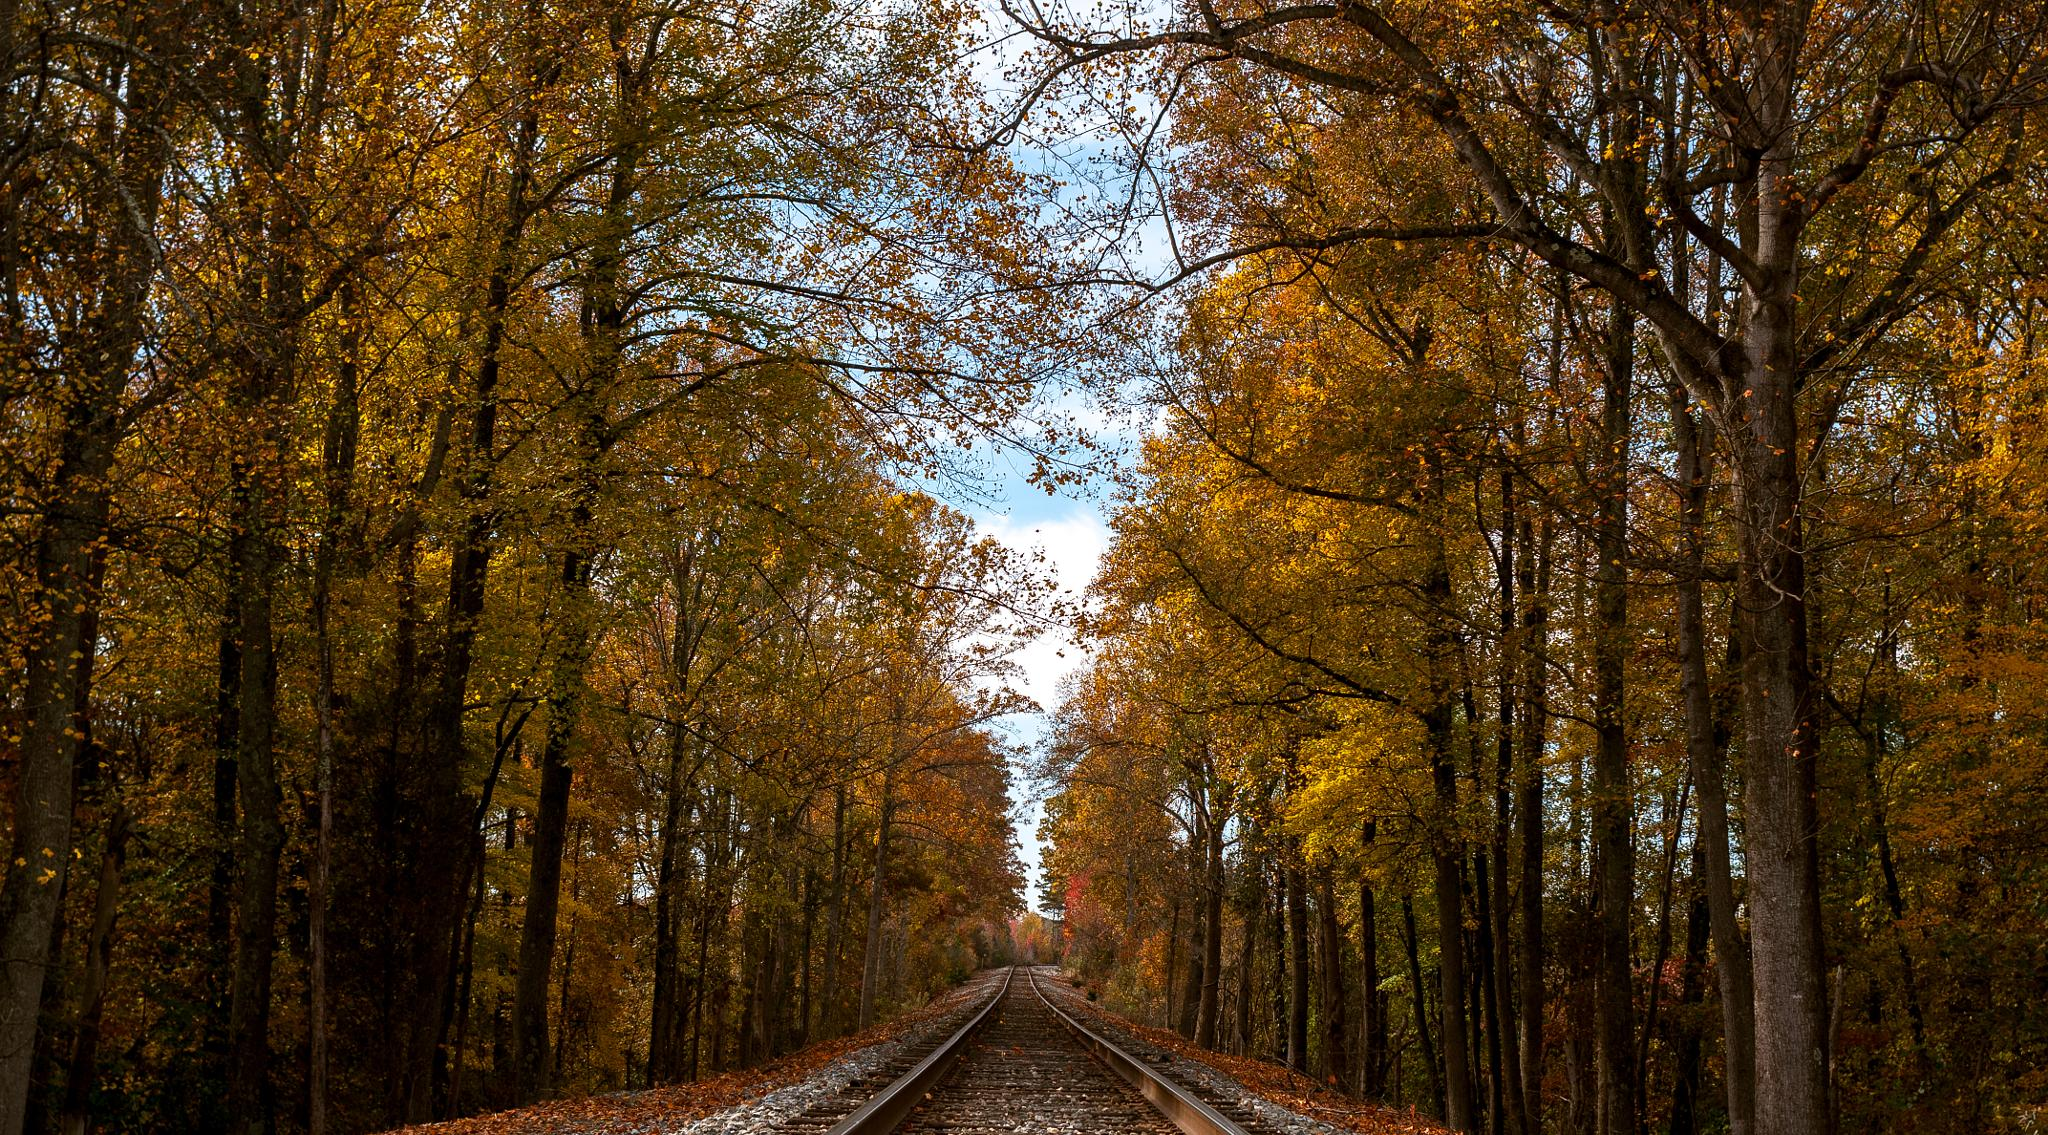 Railroad by isaacgill